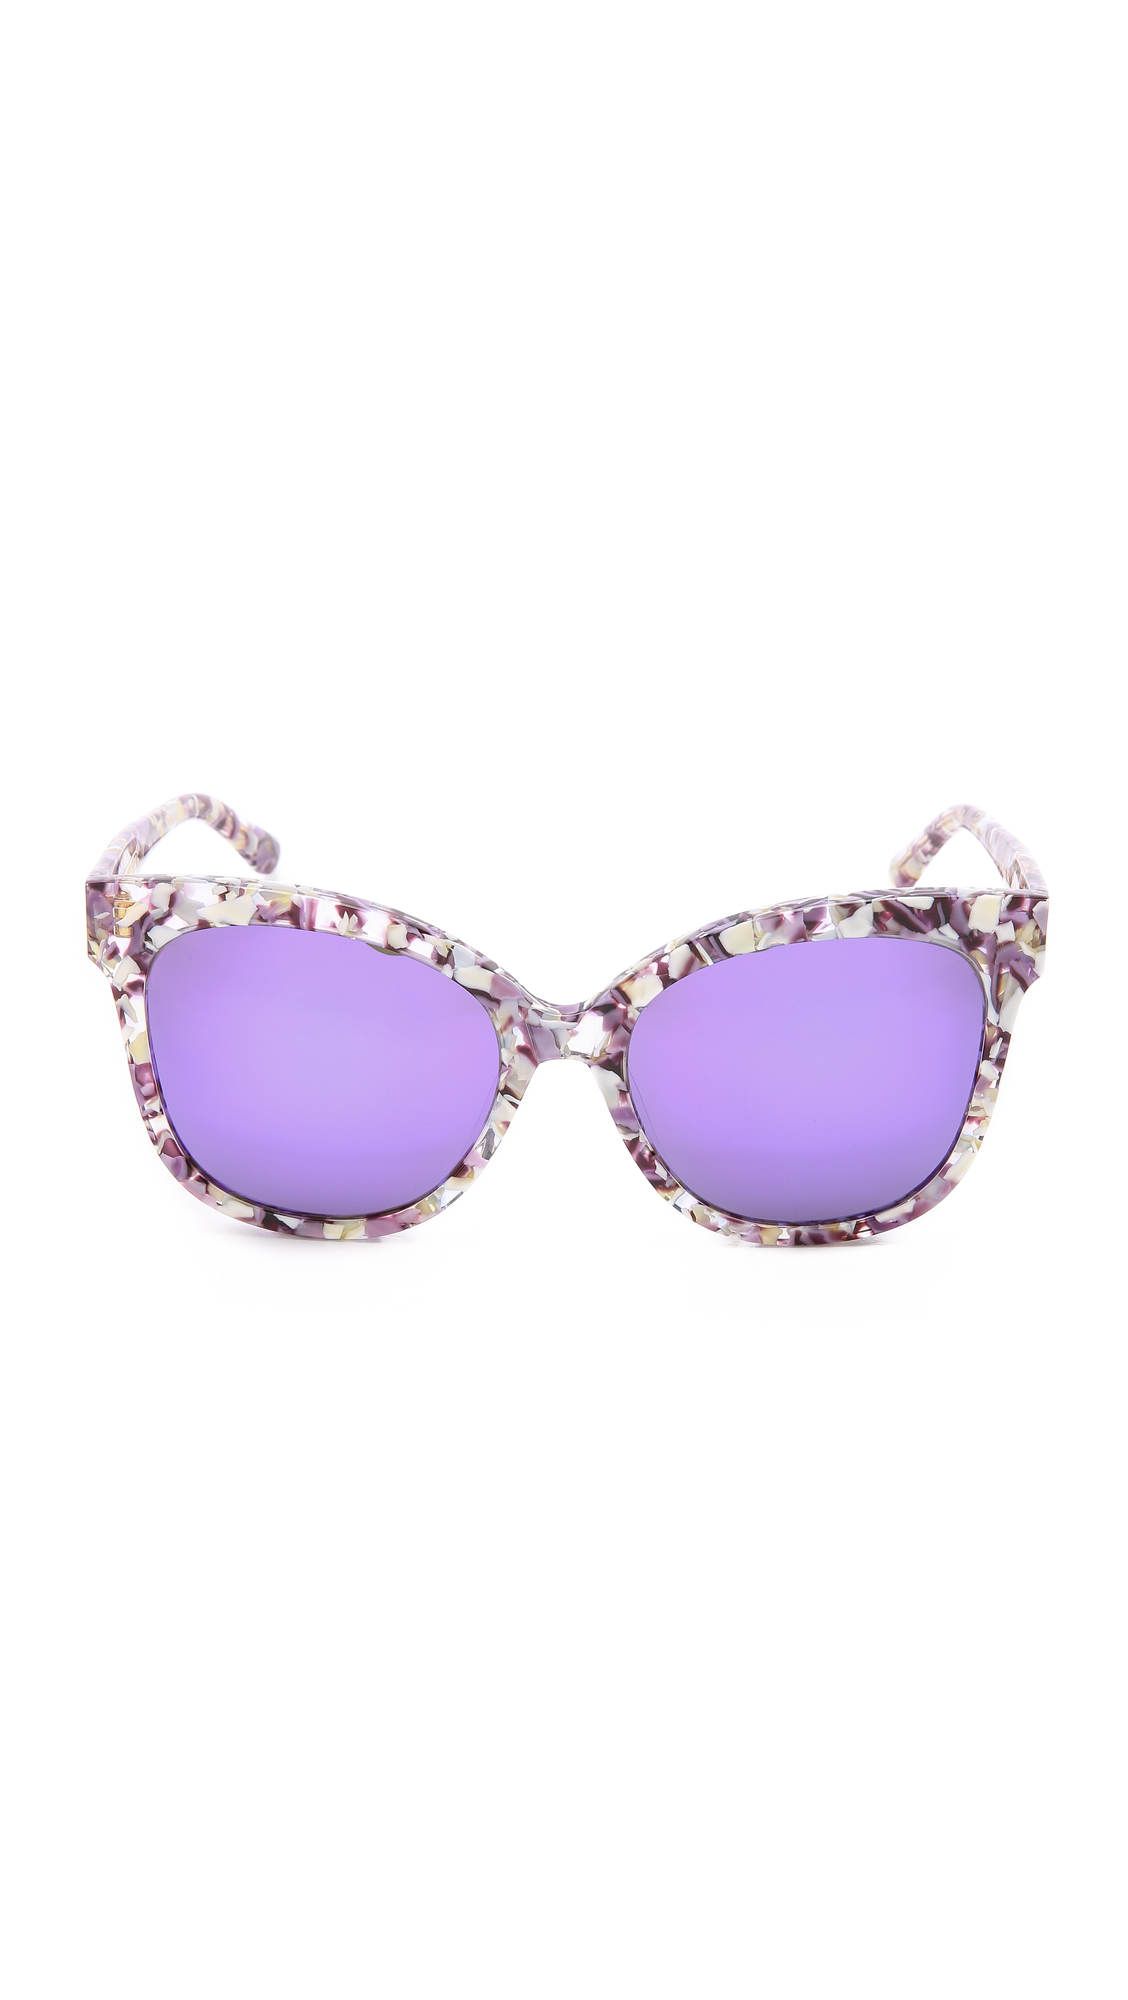 c6b630e6ccd Lyst - Gentle Monster La Rouge Sunglasses - Purple Floral Blue in Purple